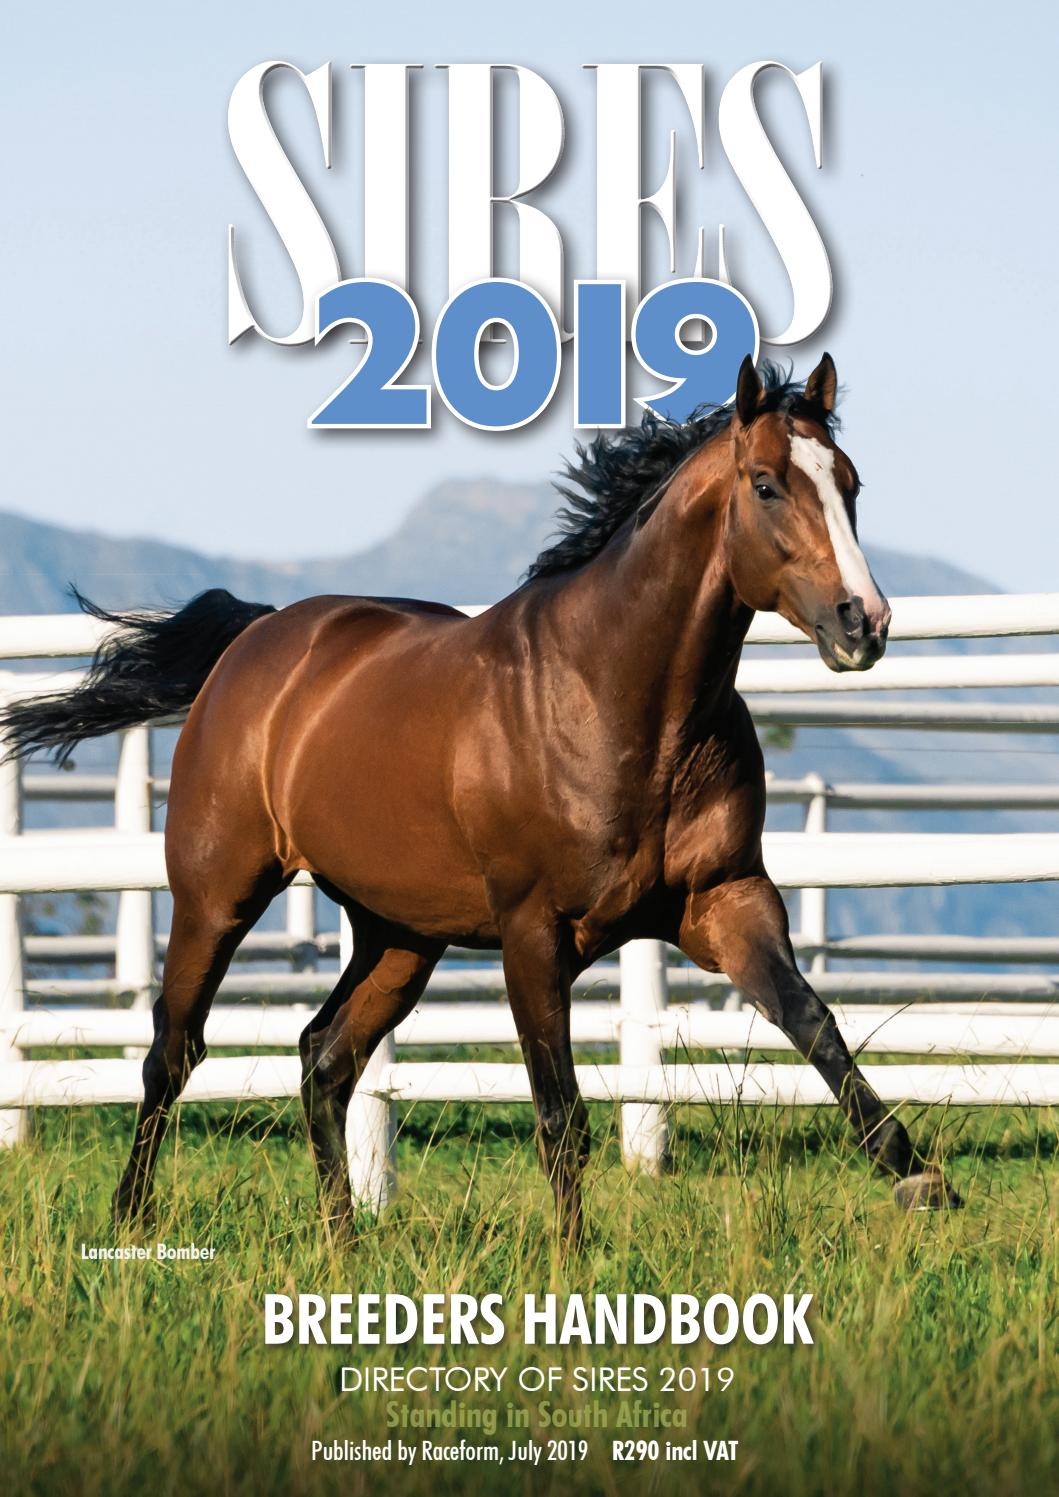 2019 sires handbook by sporting post issuu  tudor gheorghe e primavera torrent.php #13